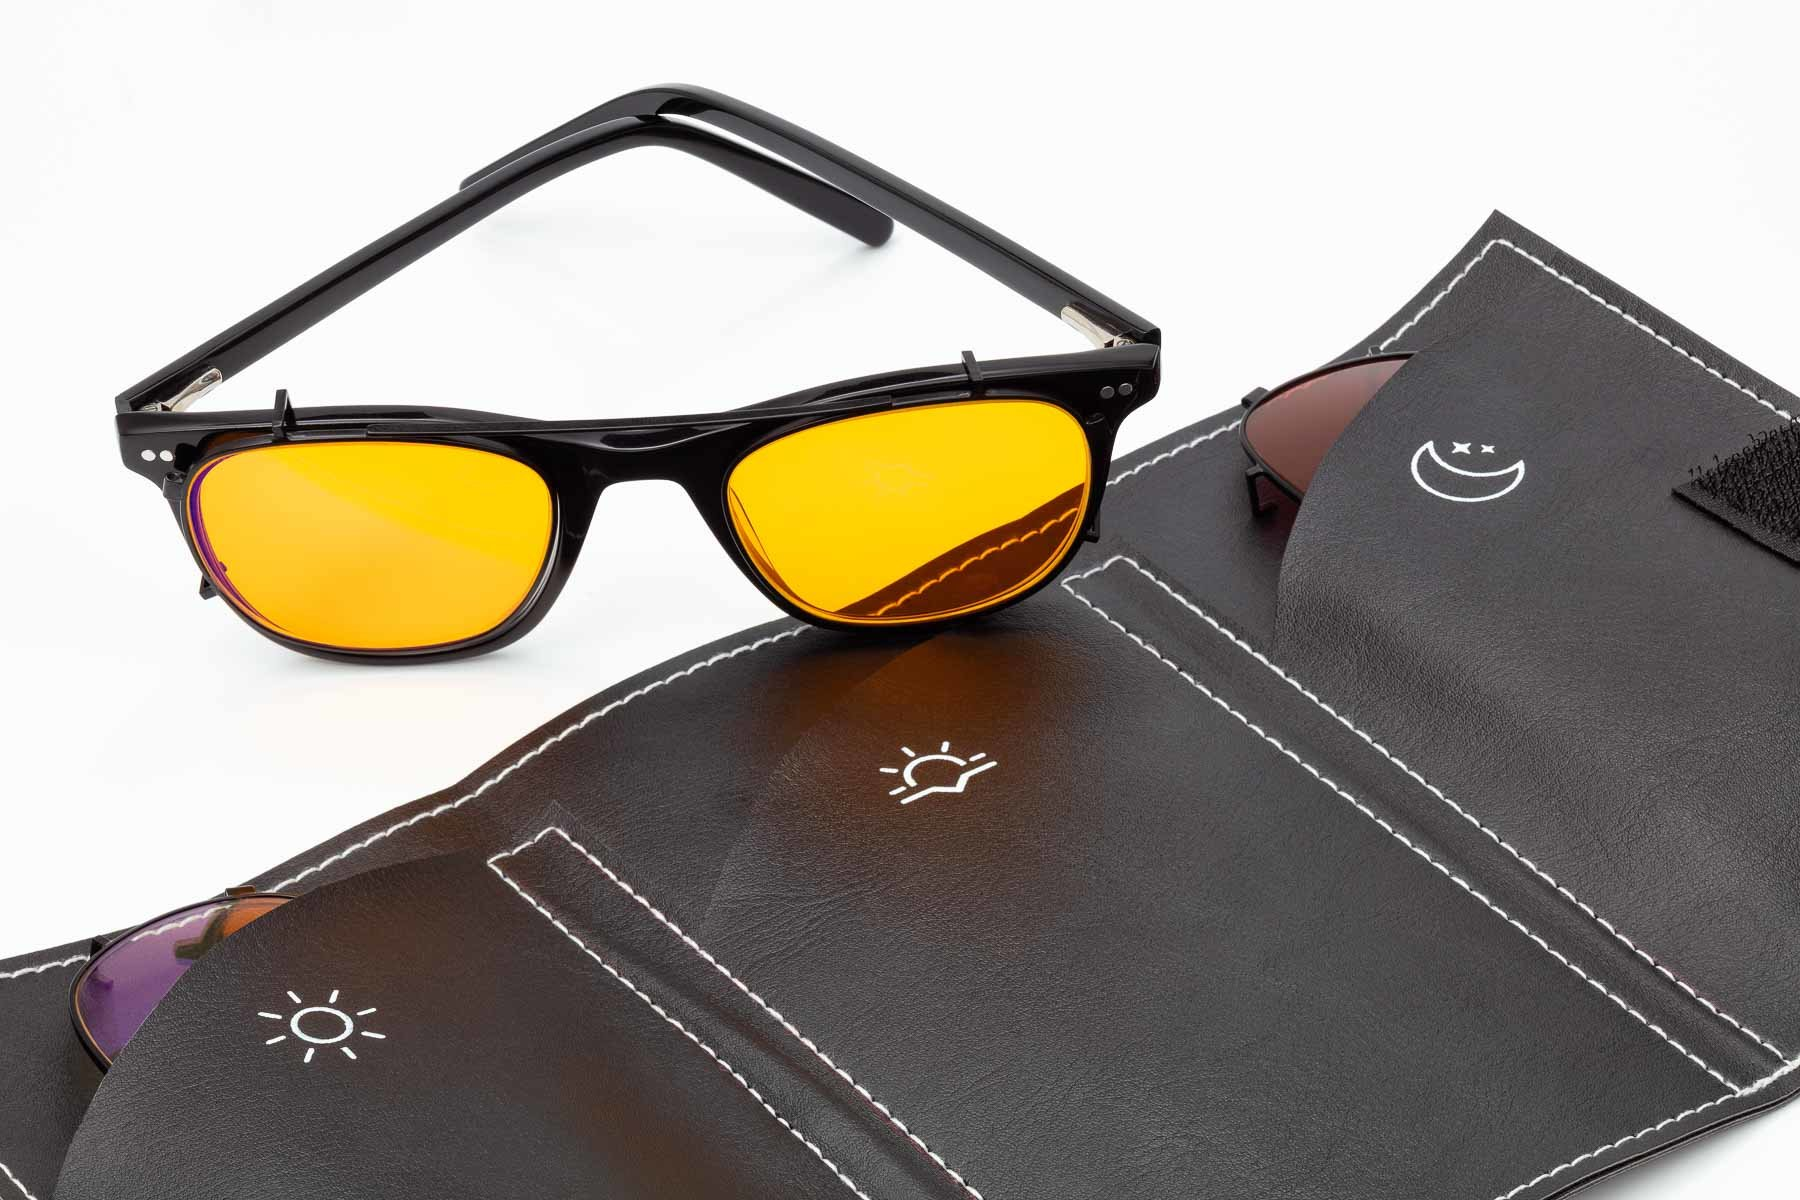 Barkley_Eyewear Square Black with leather case